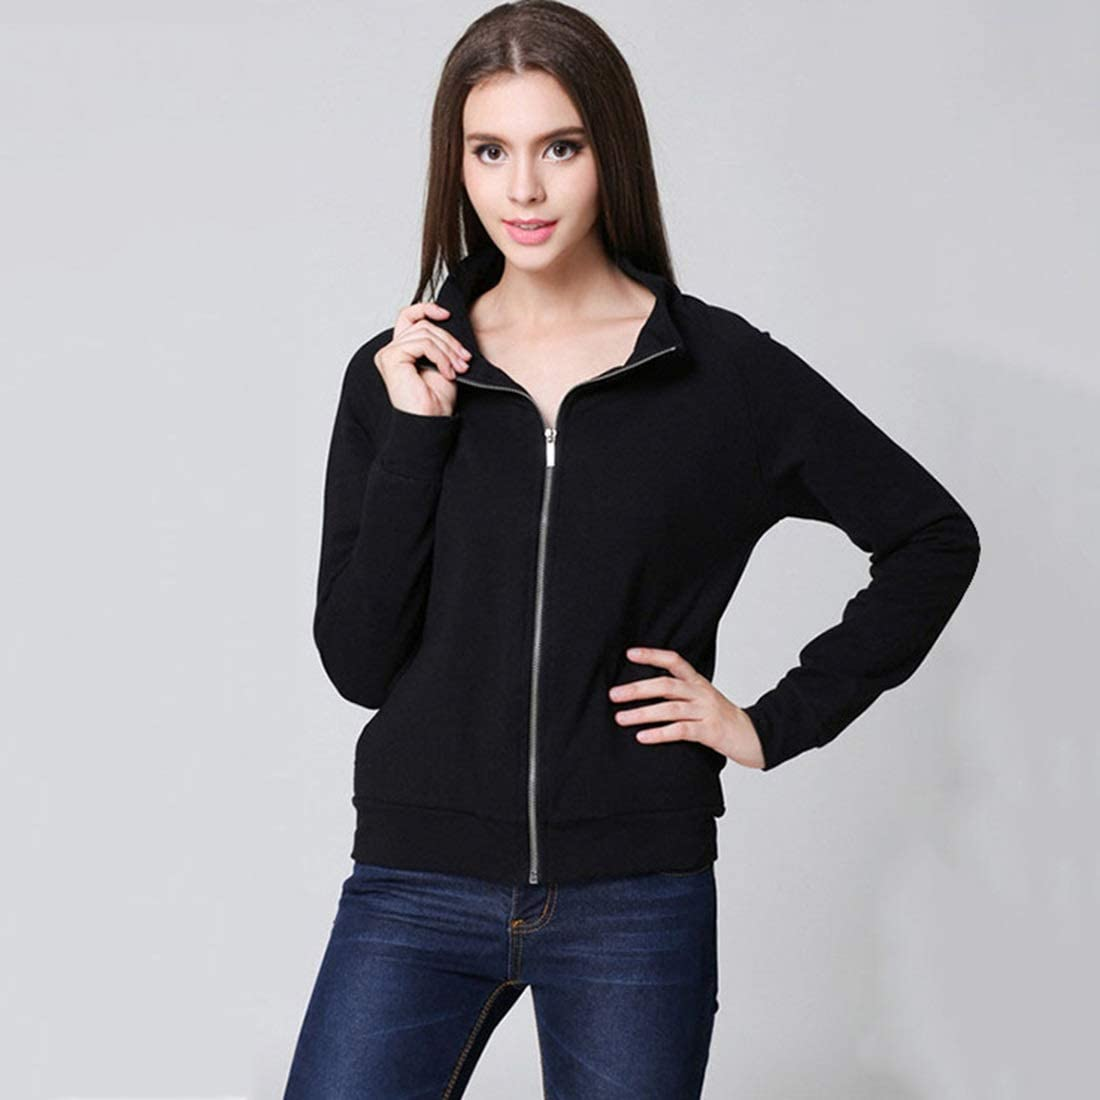 Jacket Letter Printed Autumn and C Winter Slim Super special Ranking TOP19 price Decoration